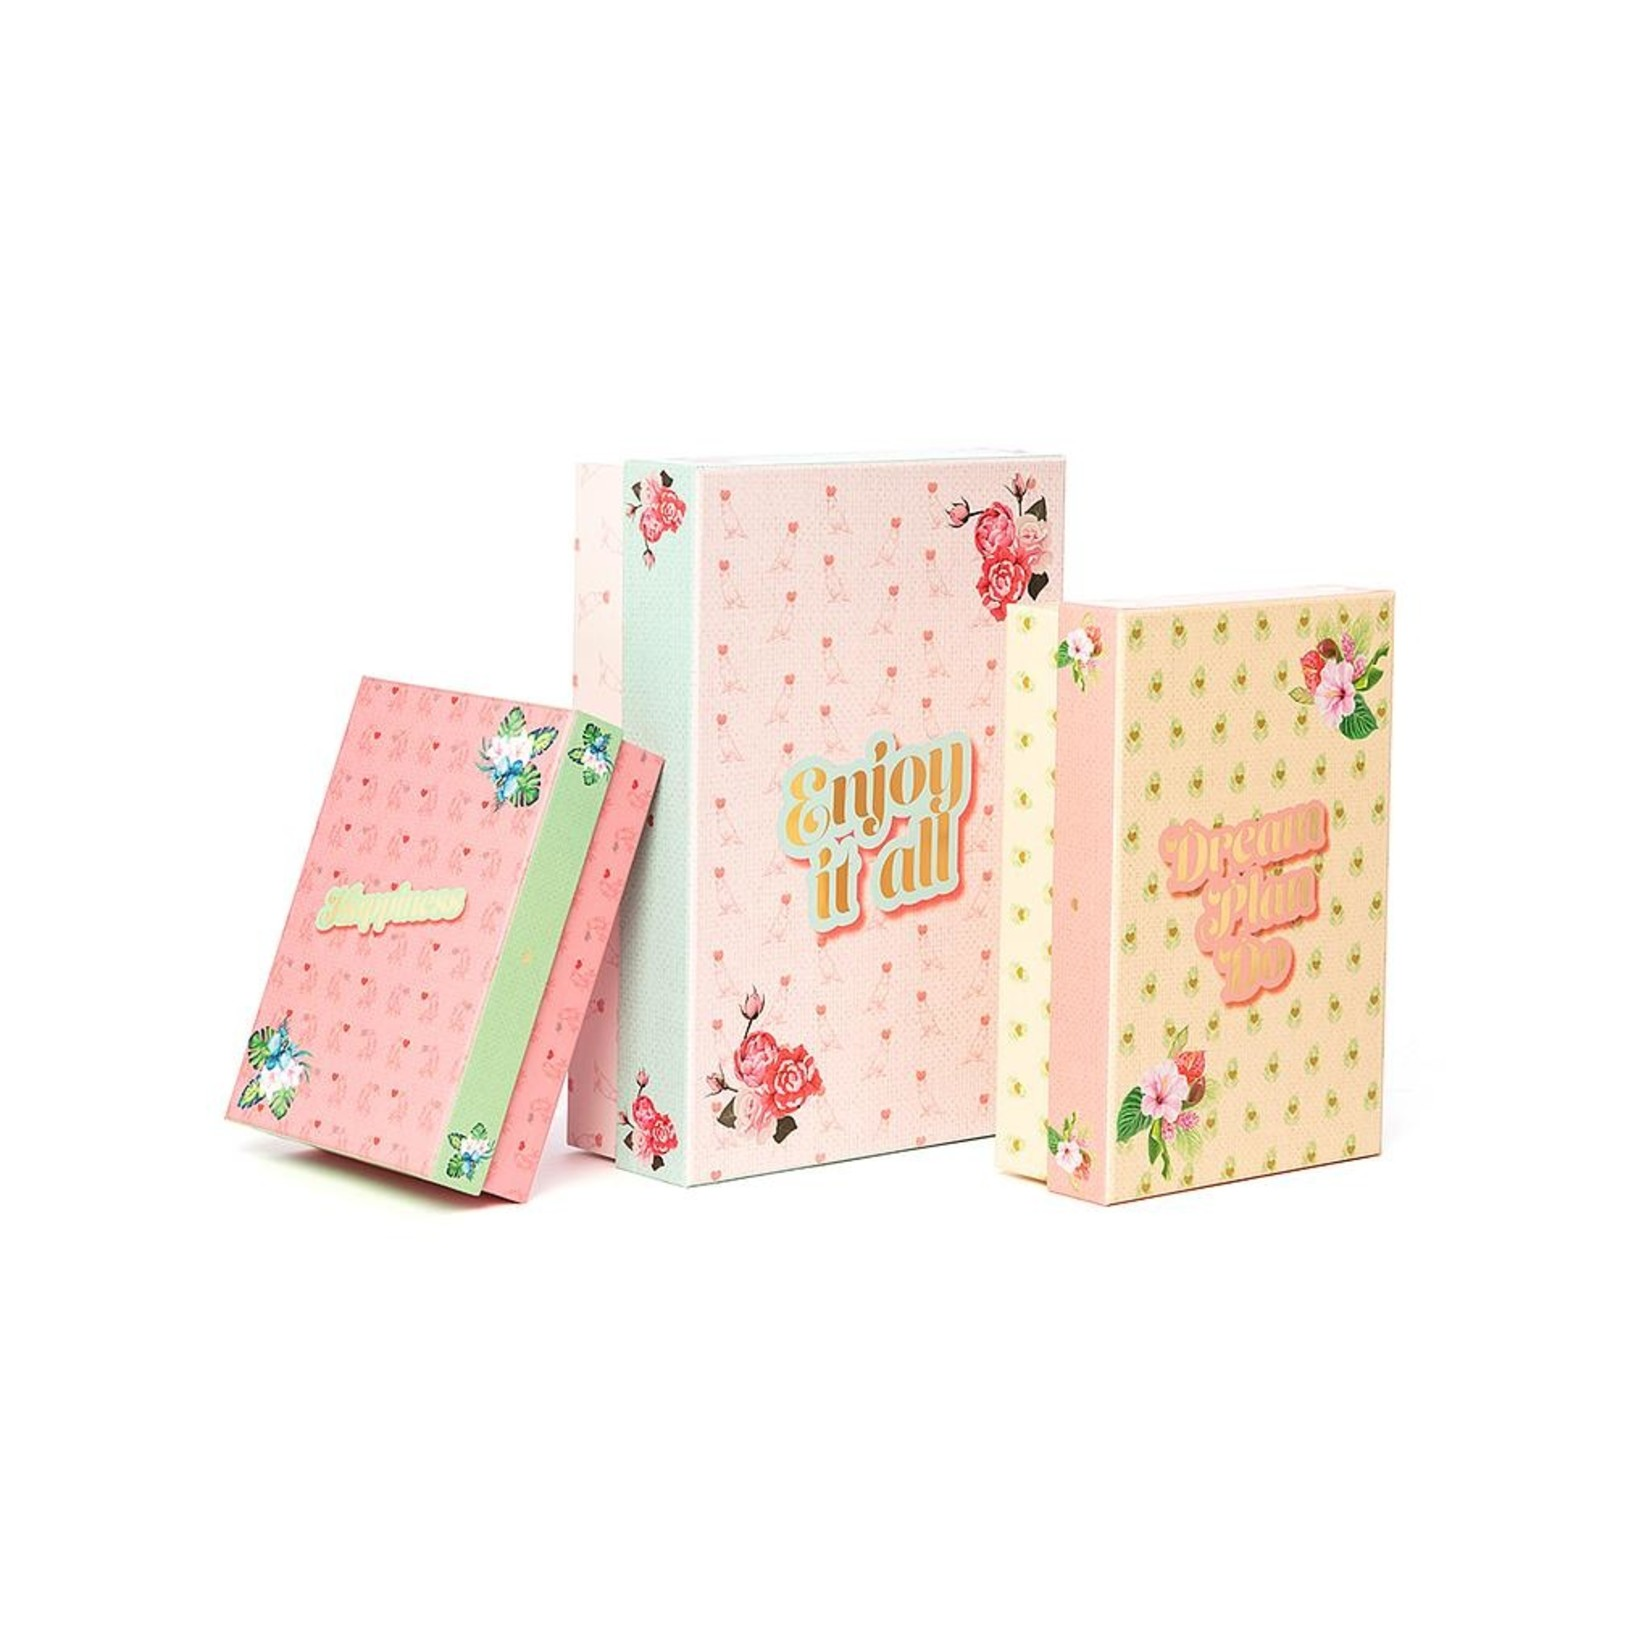 Enfant Terrible Giftbox - Happiness (Chickflick) - Small